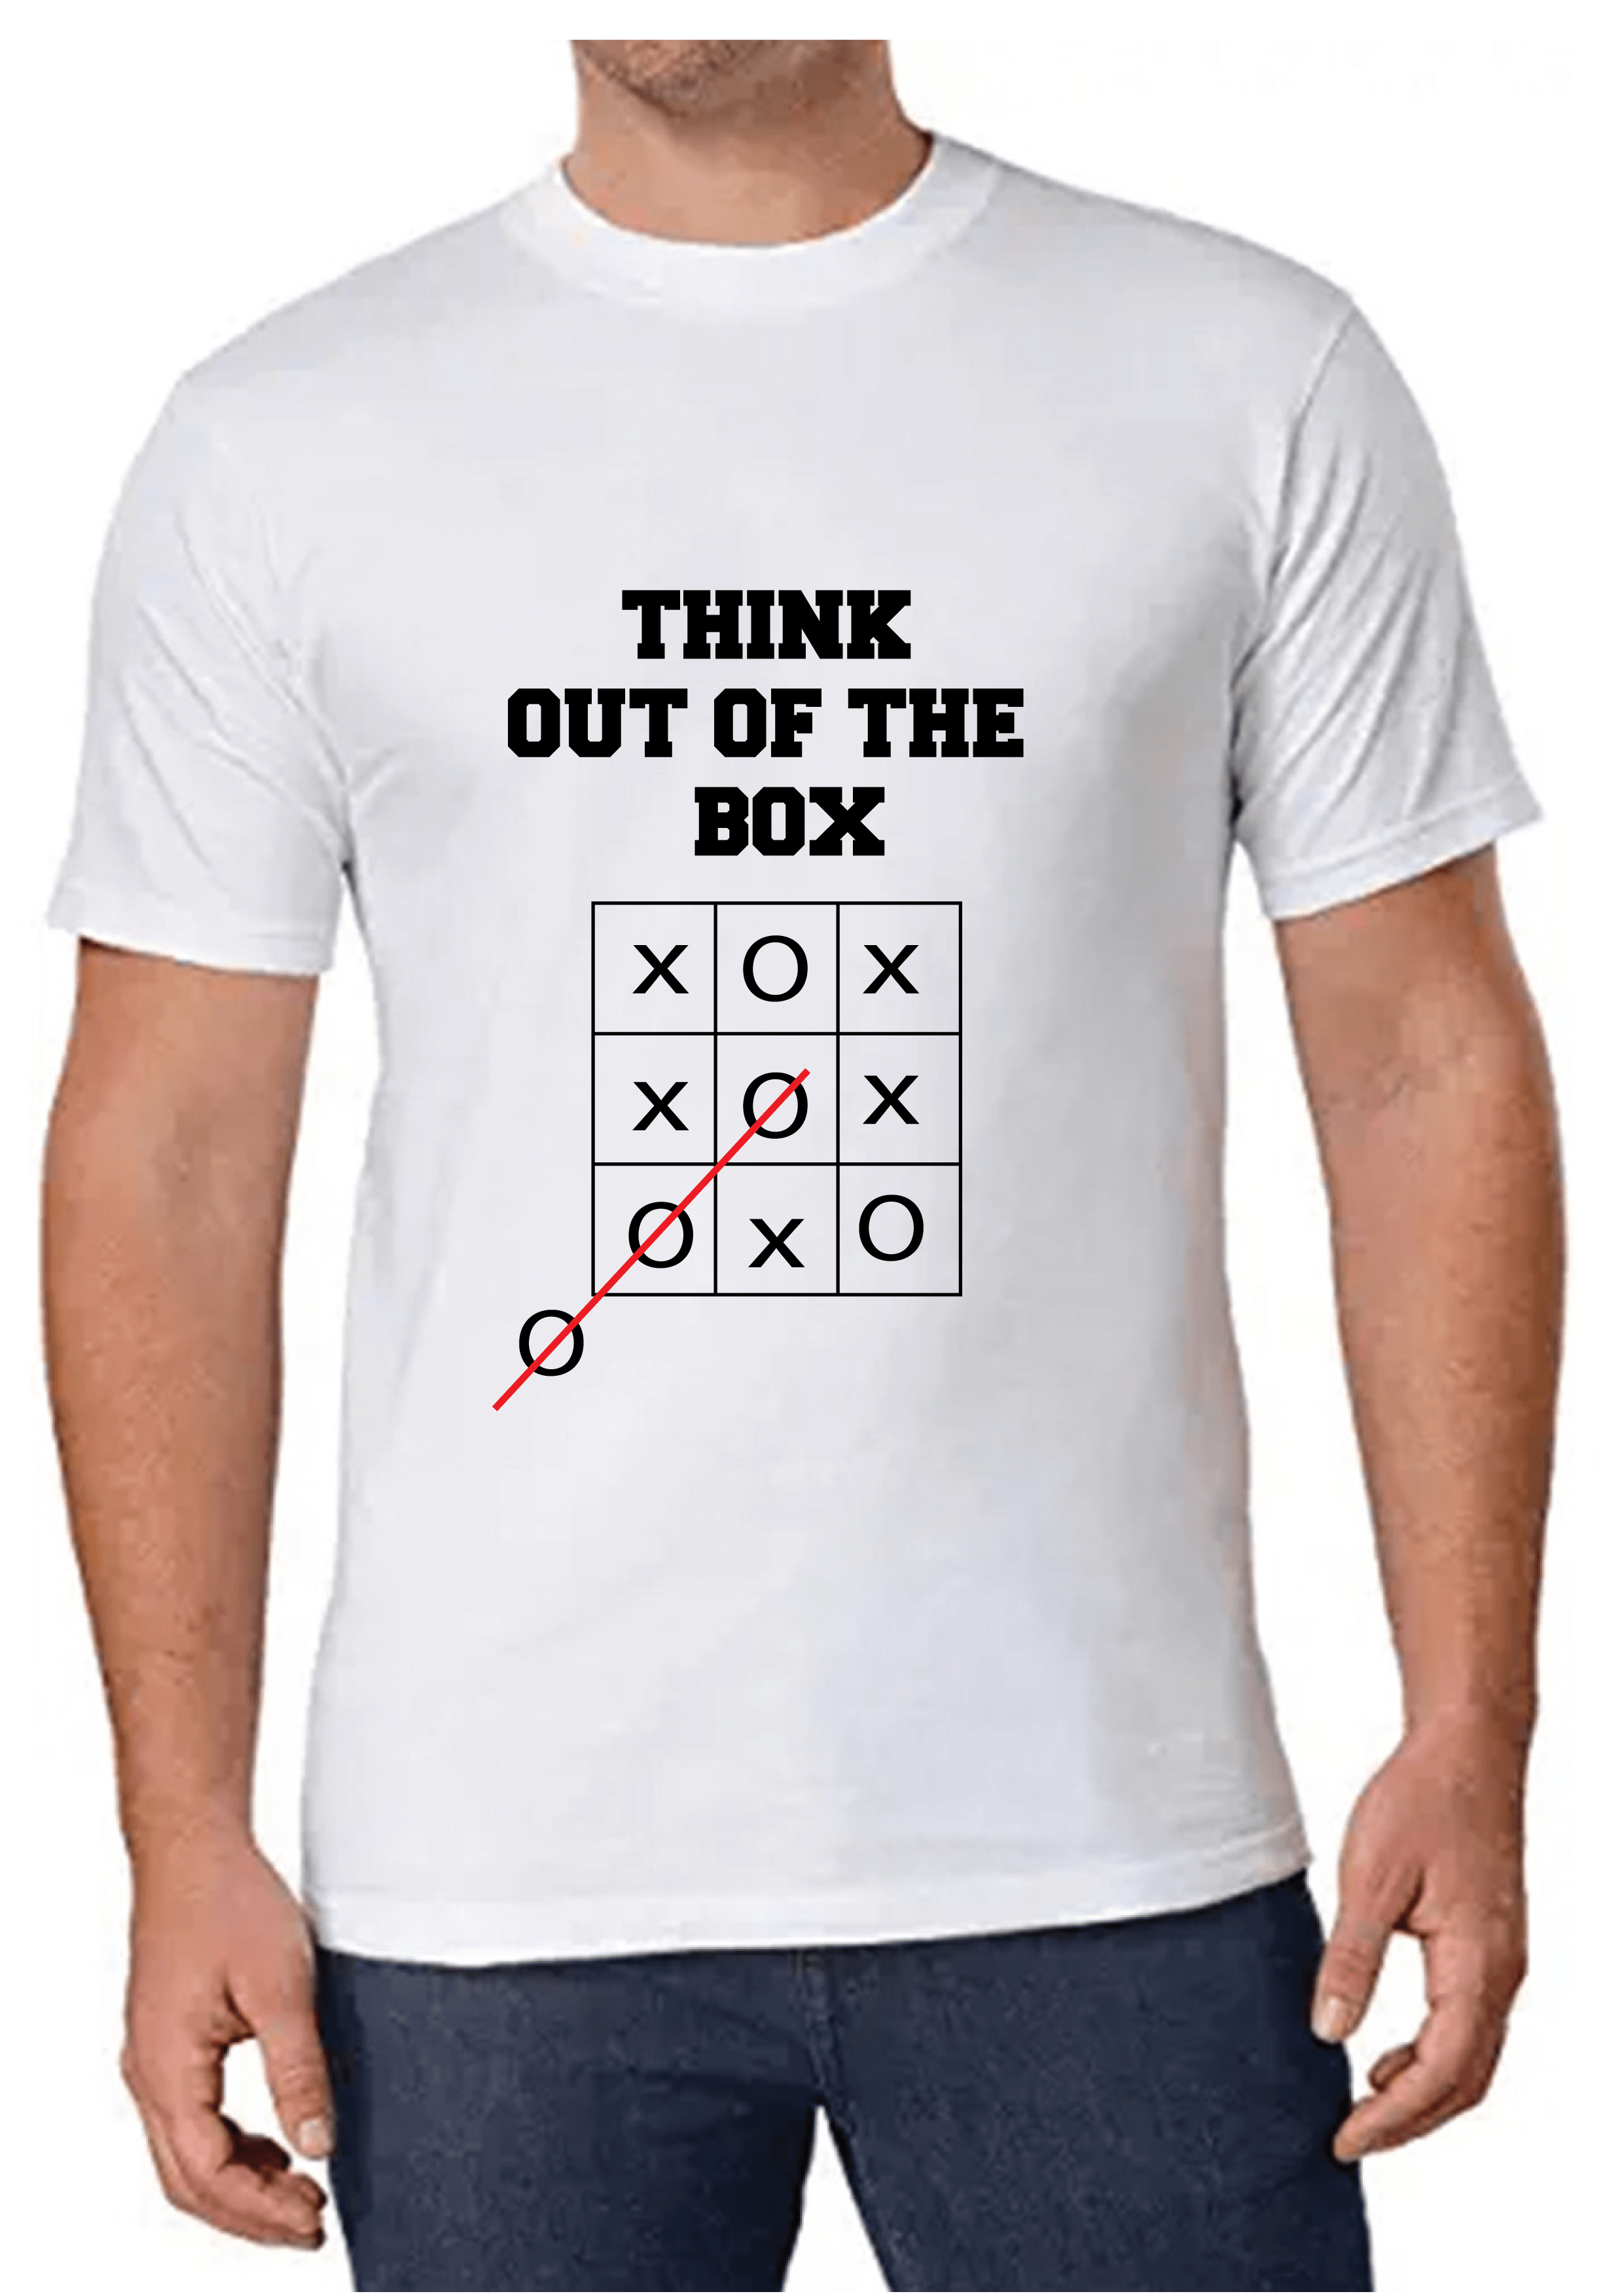 Think out of the box T-shirt for Men Slider Thumbnail 1/4